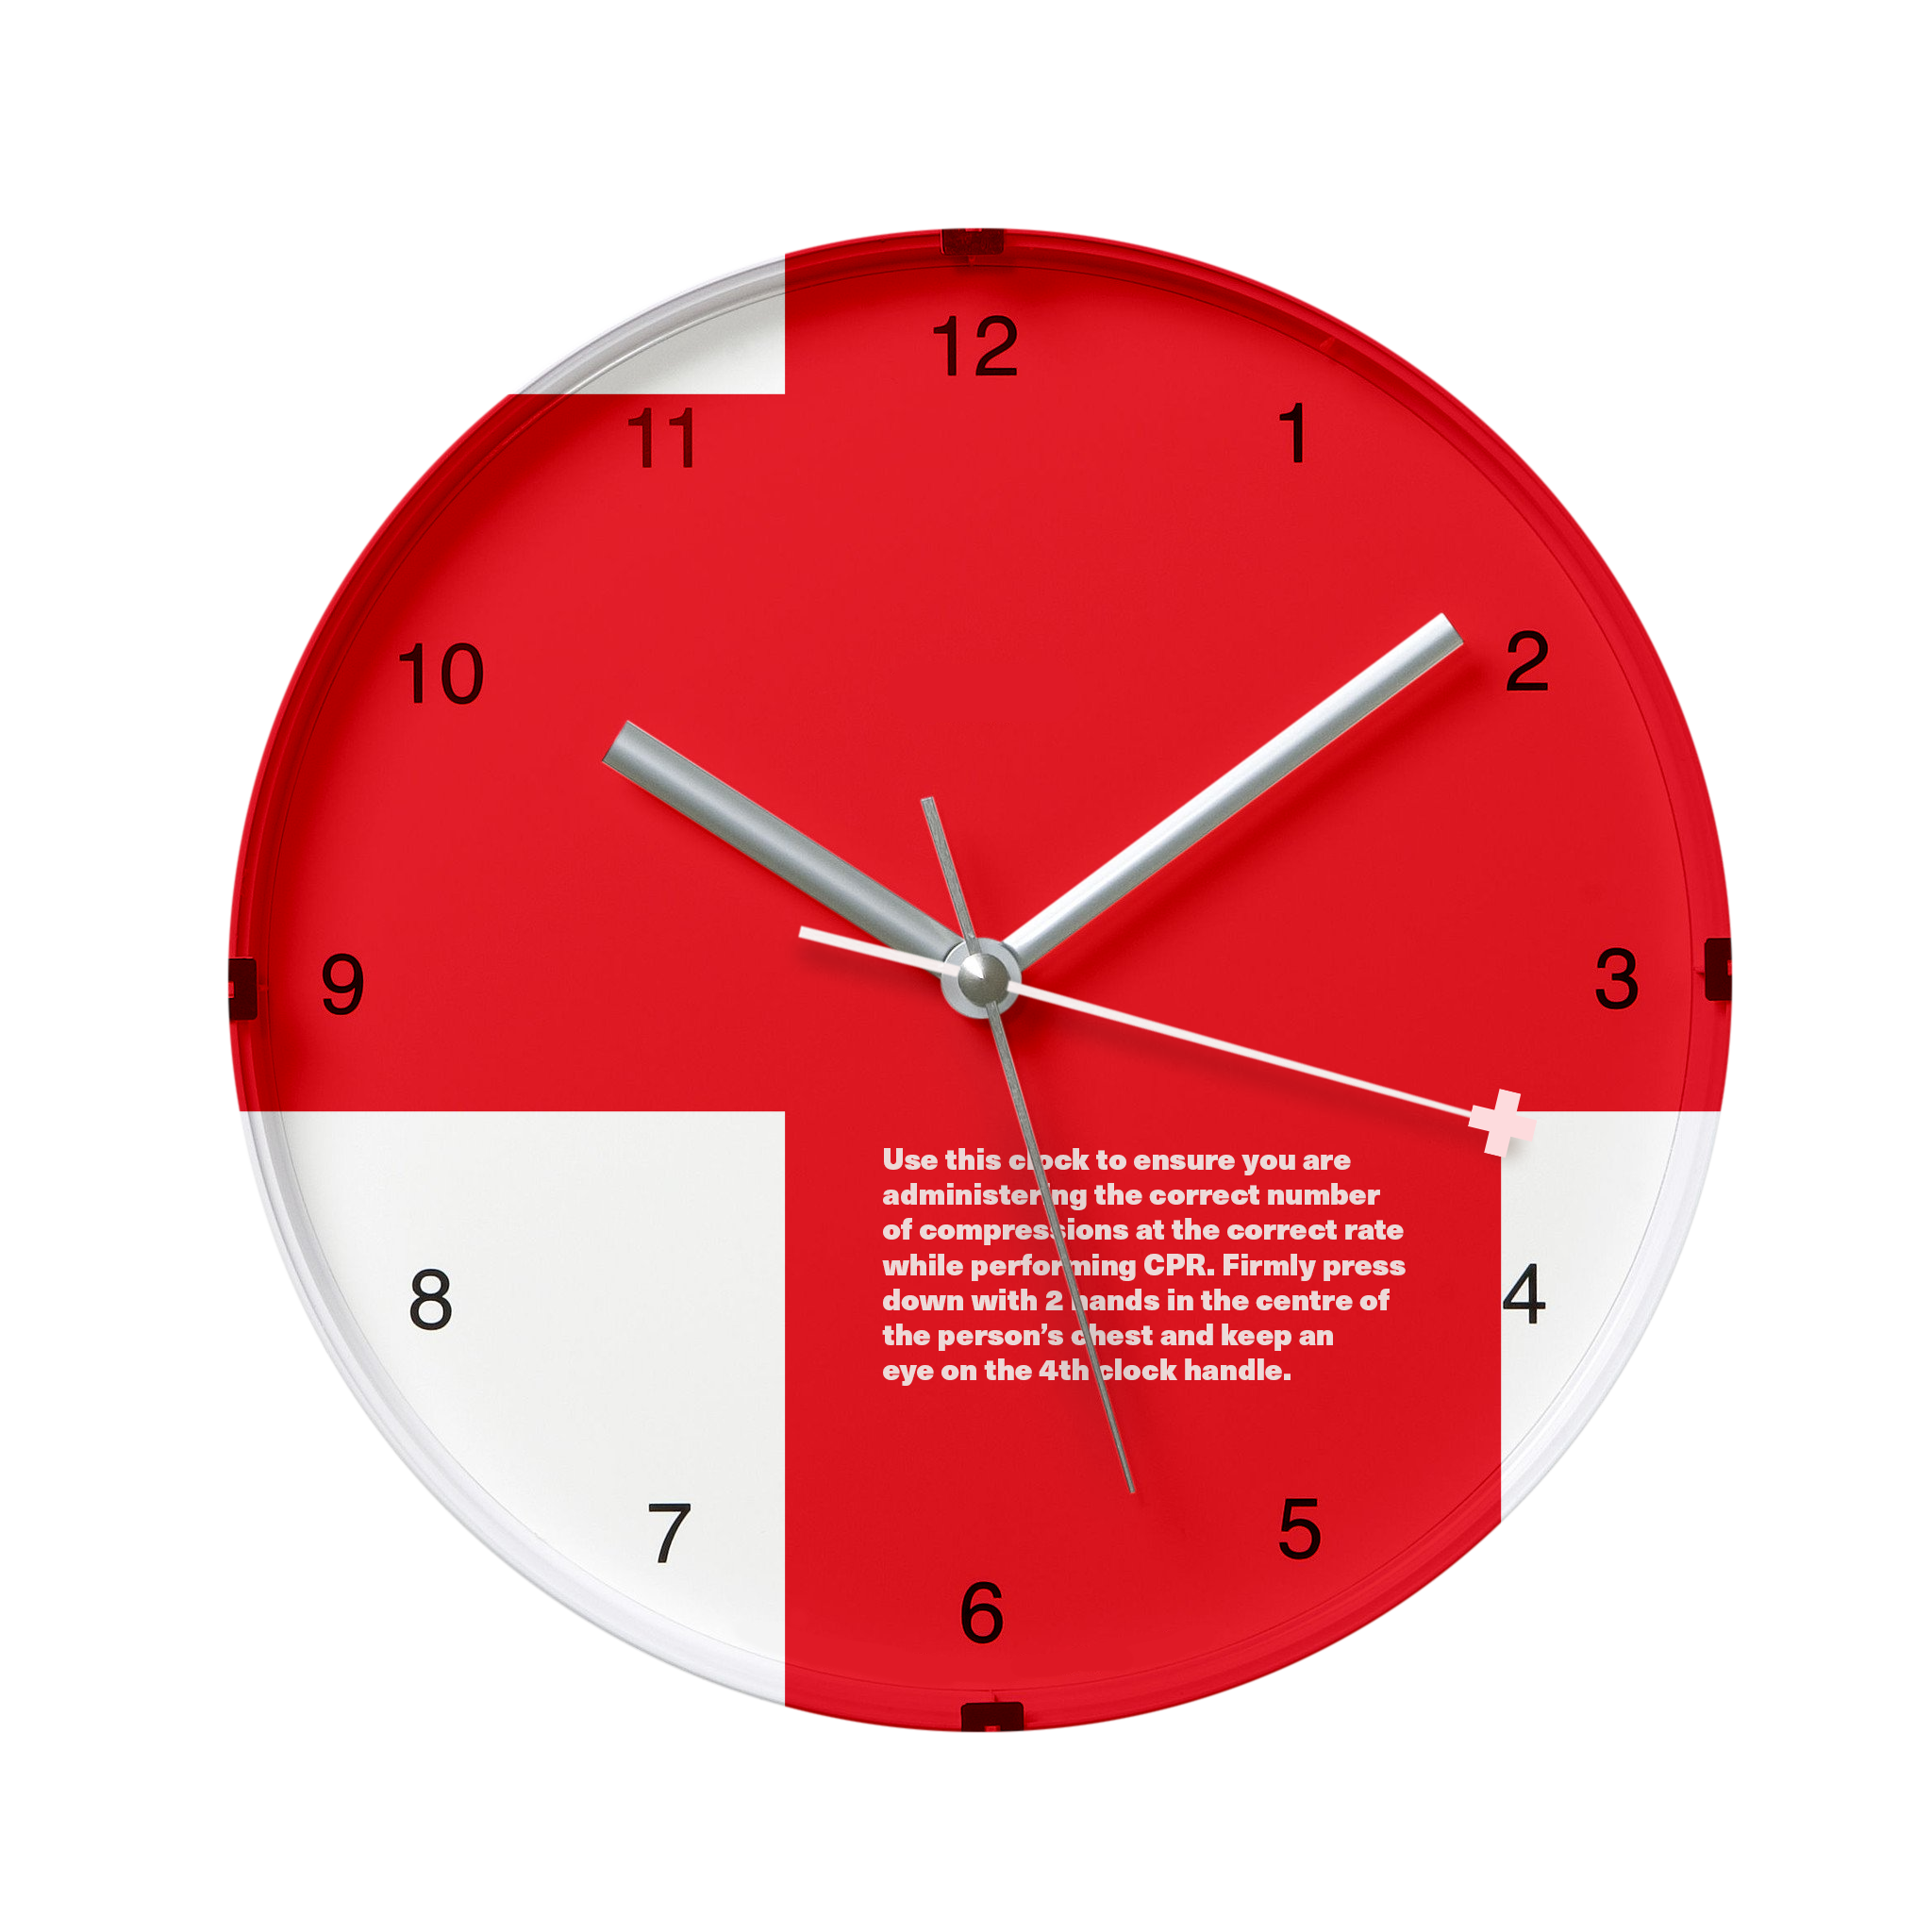 CPR Clock. - This clock has the conventional three hands, as well as a CPR hand that beats 100 ticks per minute keeping you on track for effective compressions.